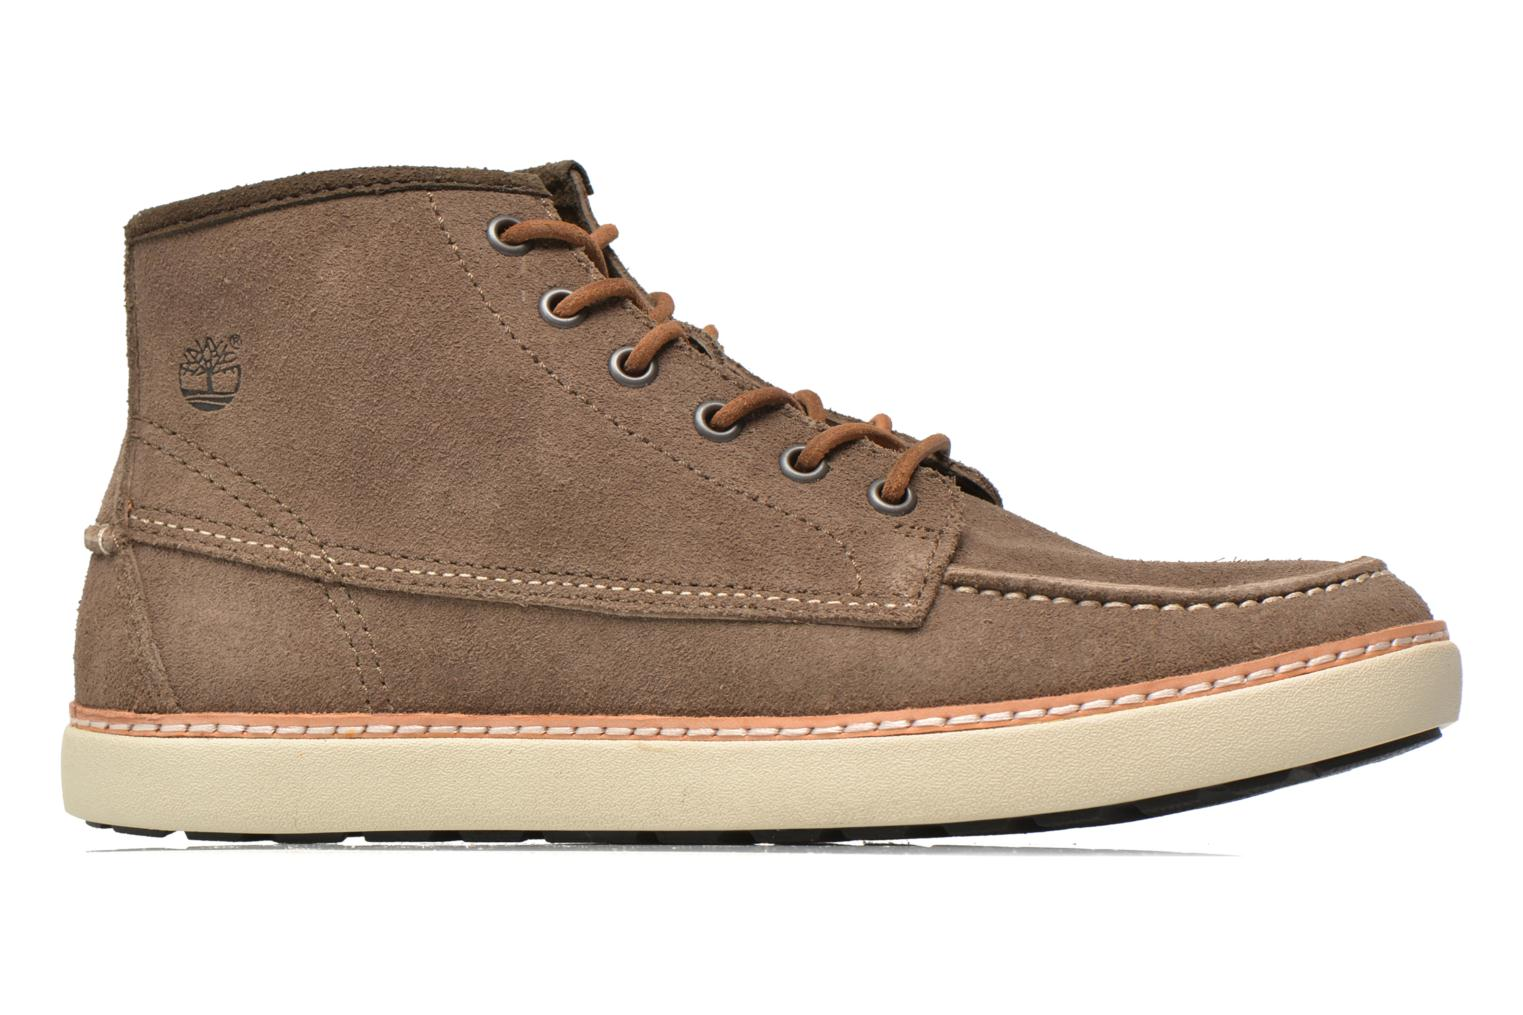 Chaussures à lacets Timberland Earthkeepers Hudstond MTC Gris vue derrière